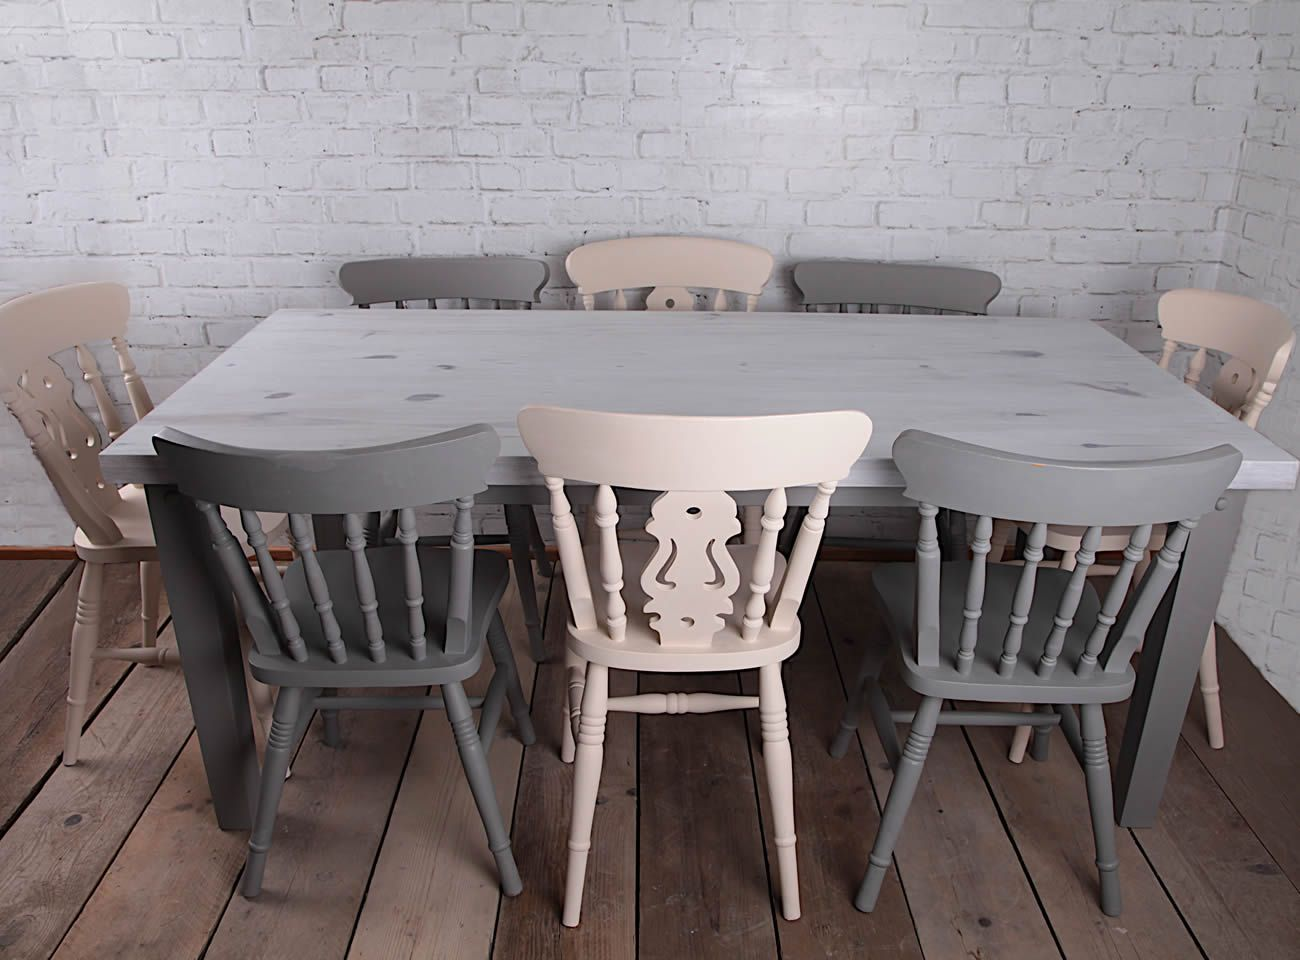 Vintage Farmhouse Country Home Shabby Chic Style Dining Table Chair Set Hand Painted Using Autentico Chalk Based Paints